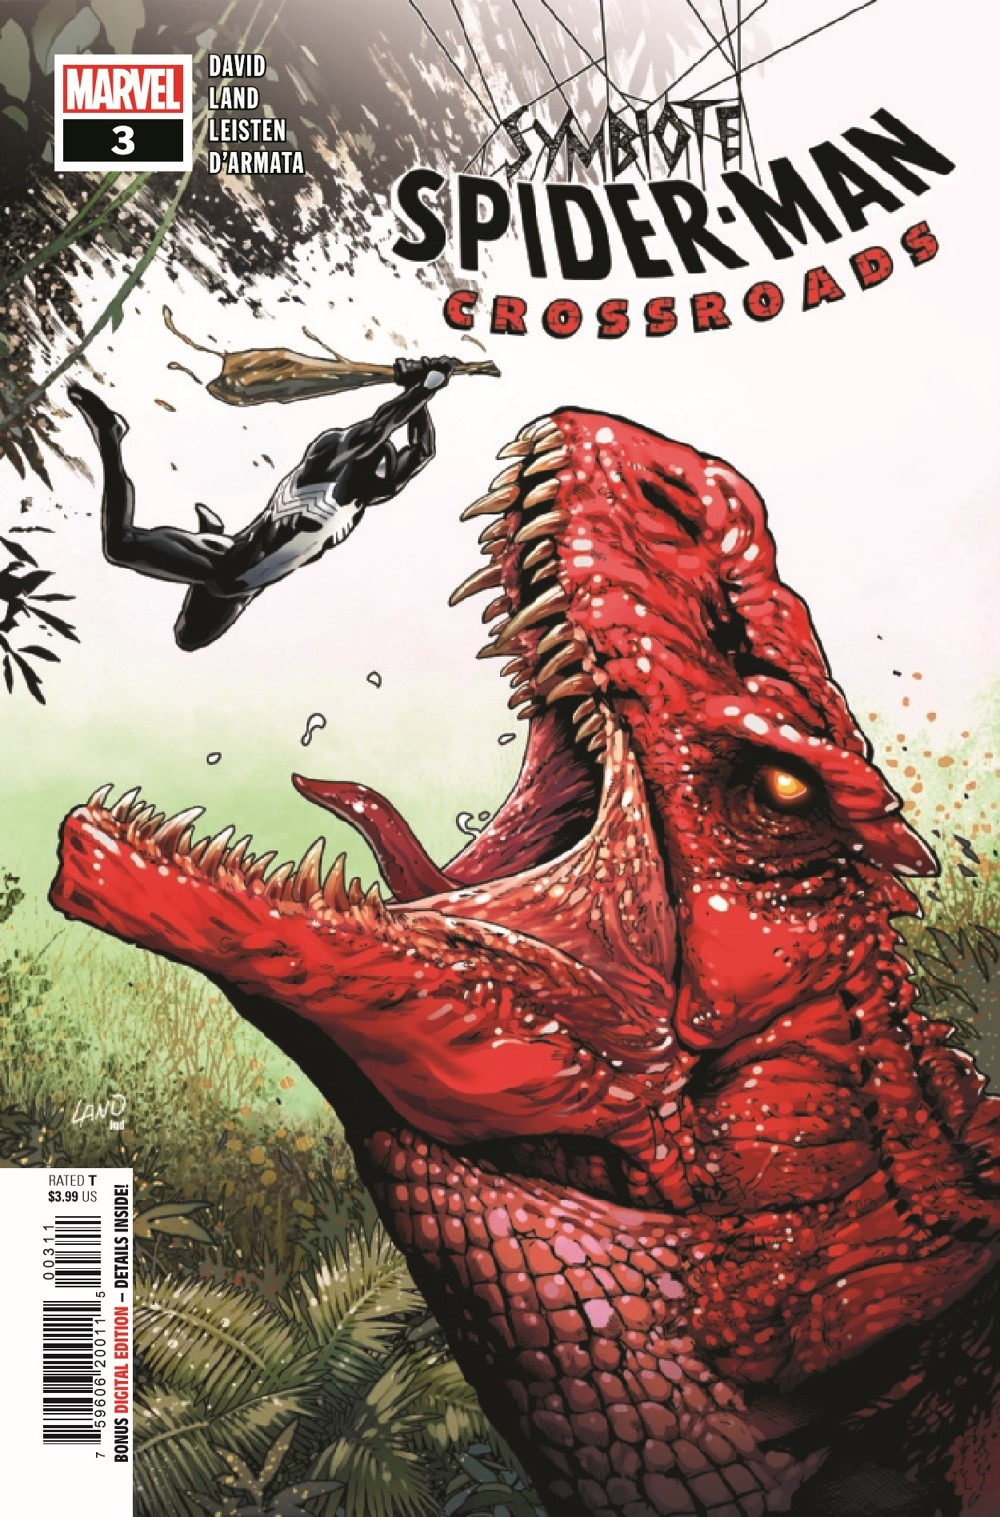 SYMBIOTESMCR2021003_Preview-1 ComicList Previews: SYMBIOTE SPIDER-MAN CROSSROADS #3 (OF 5)